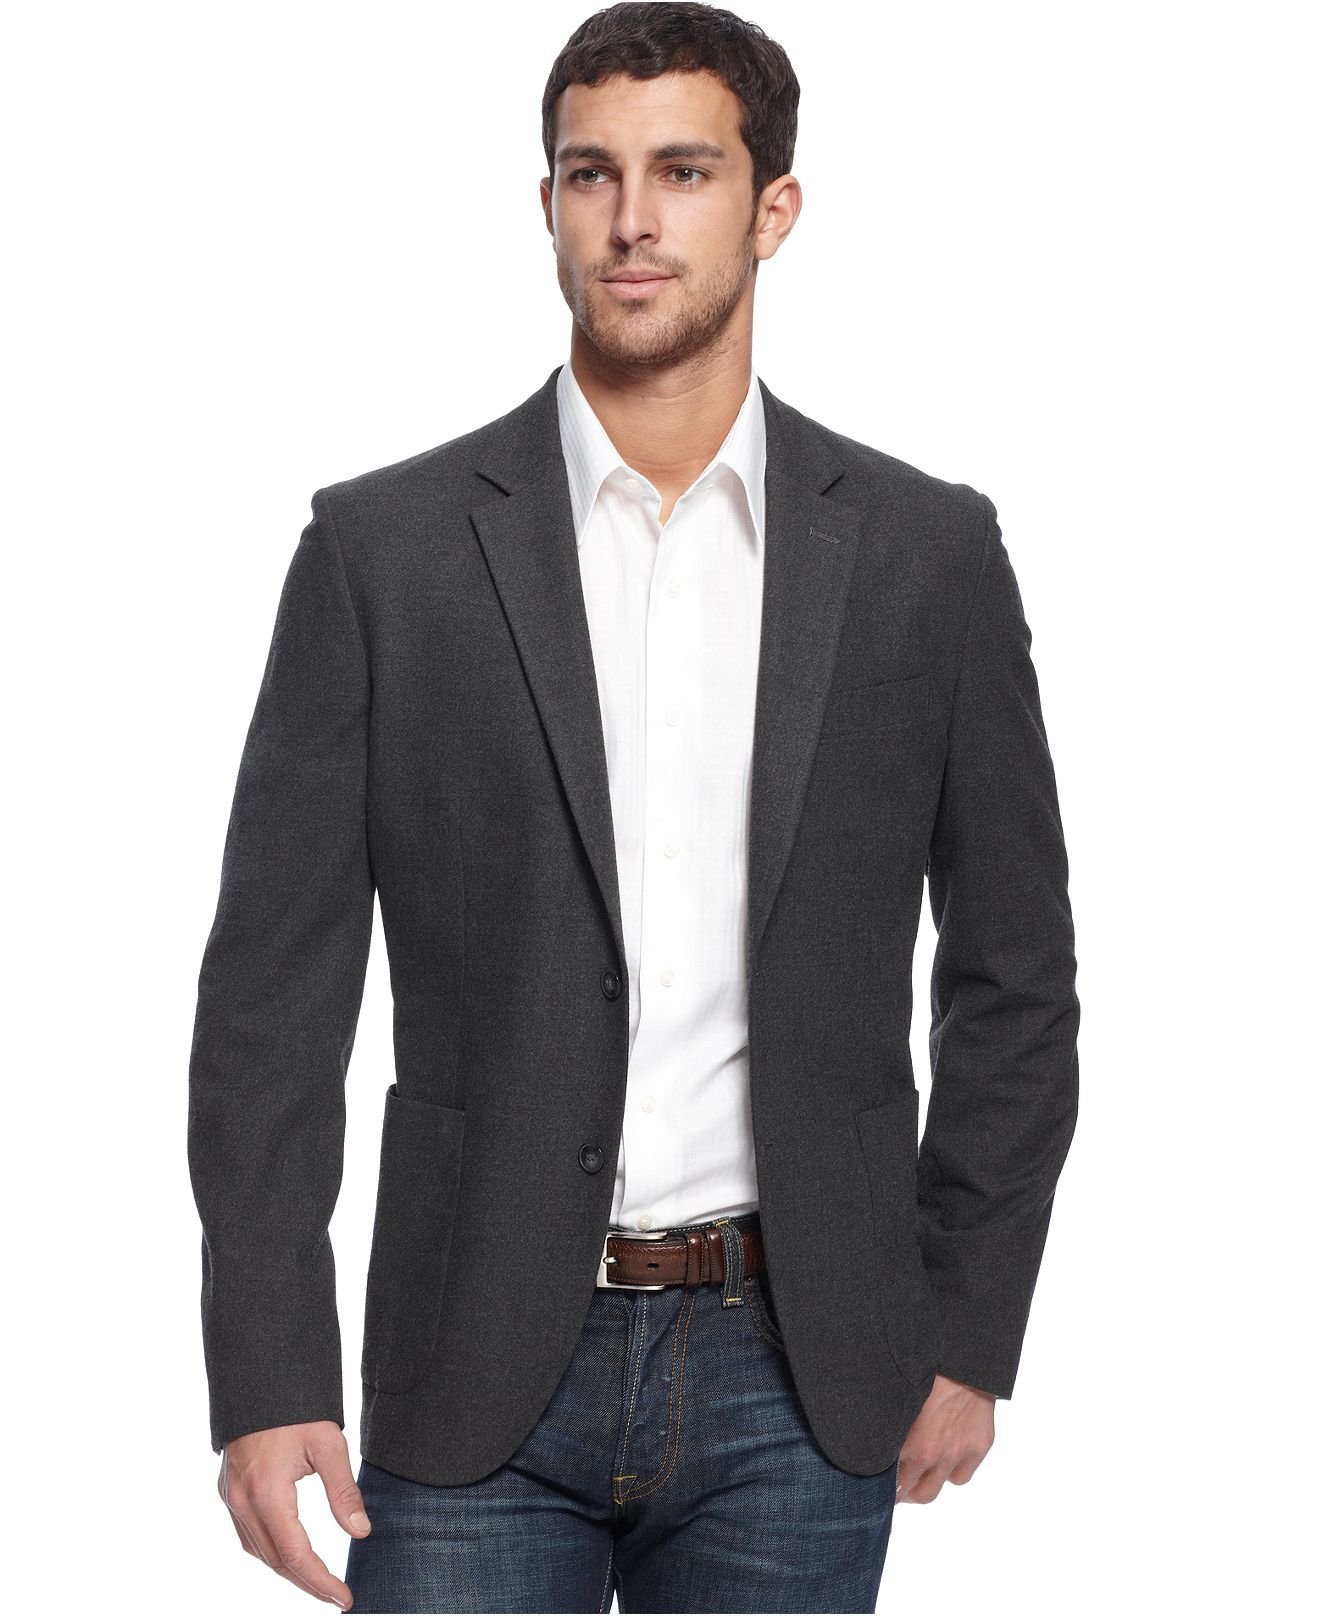 Free shipping BOTH ways on mens sport jackets, from our vast selection of styles. Fast delivery, and 24/7/ real-person service with a smile. Click or call